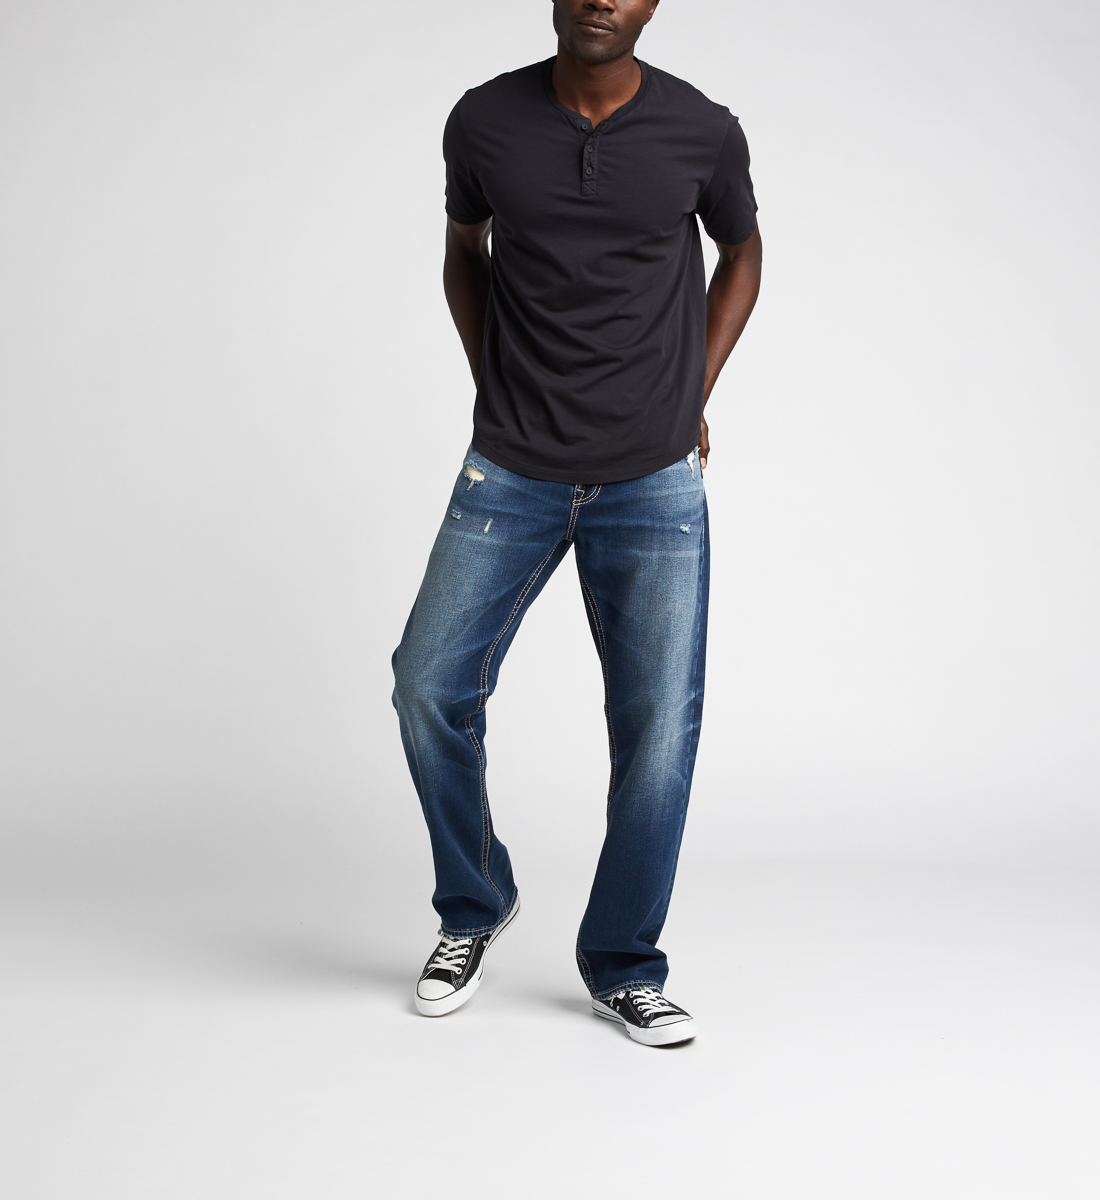 Silver Jeans Grayson Easy Fit Straight Jeans